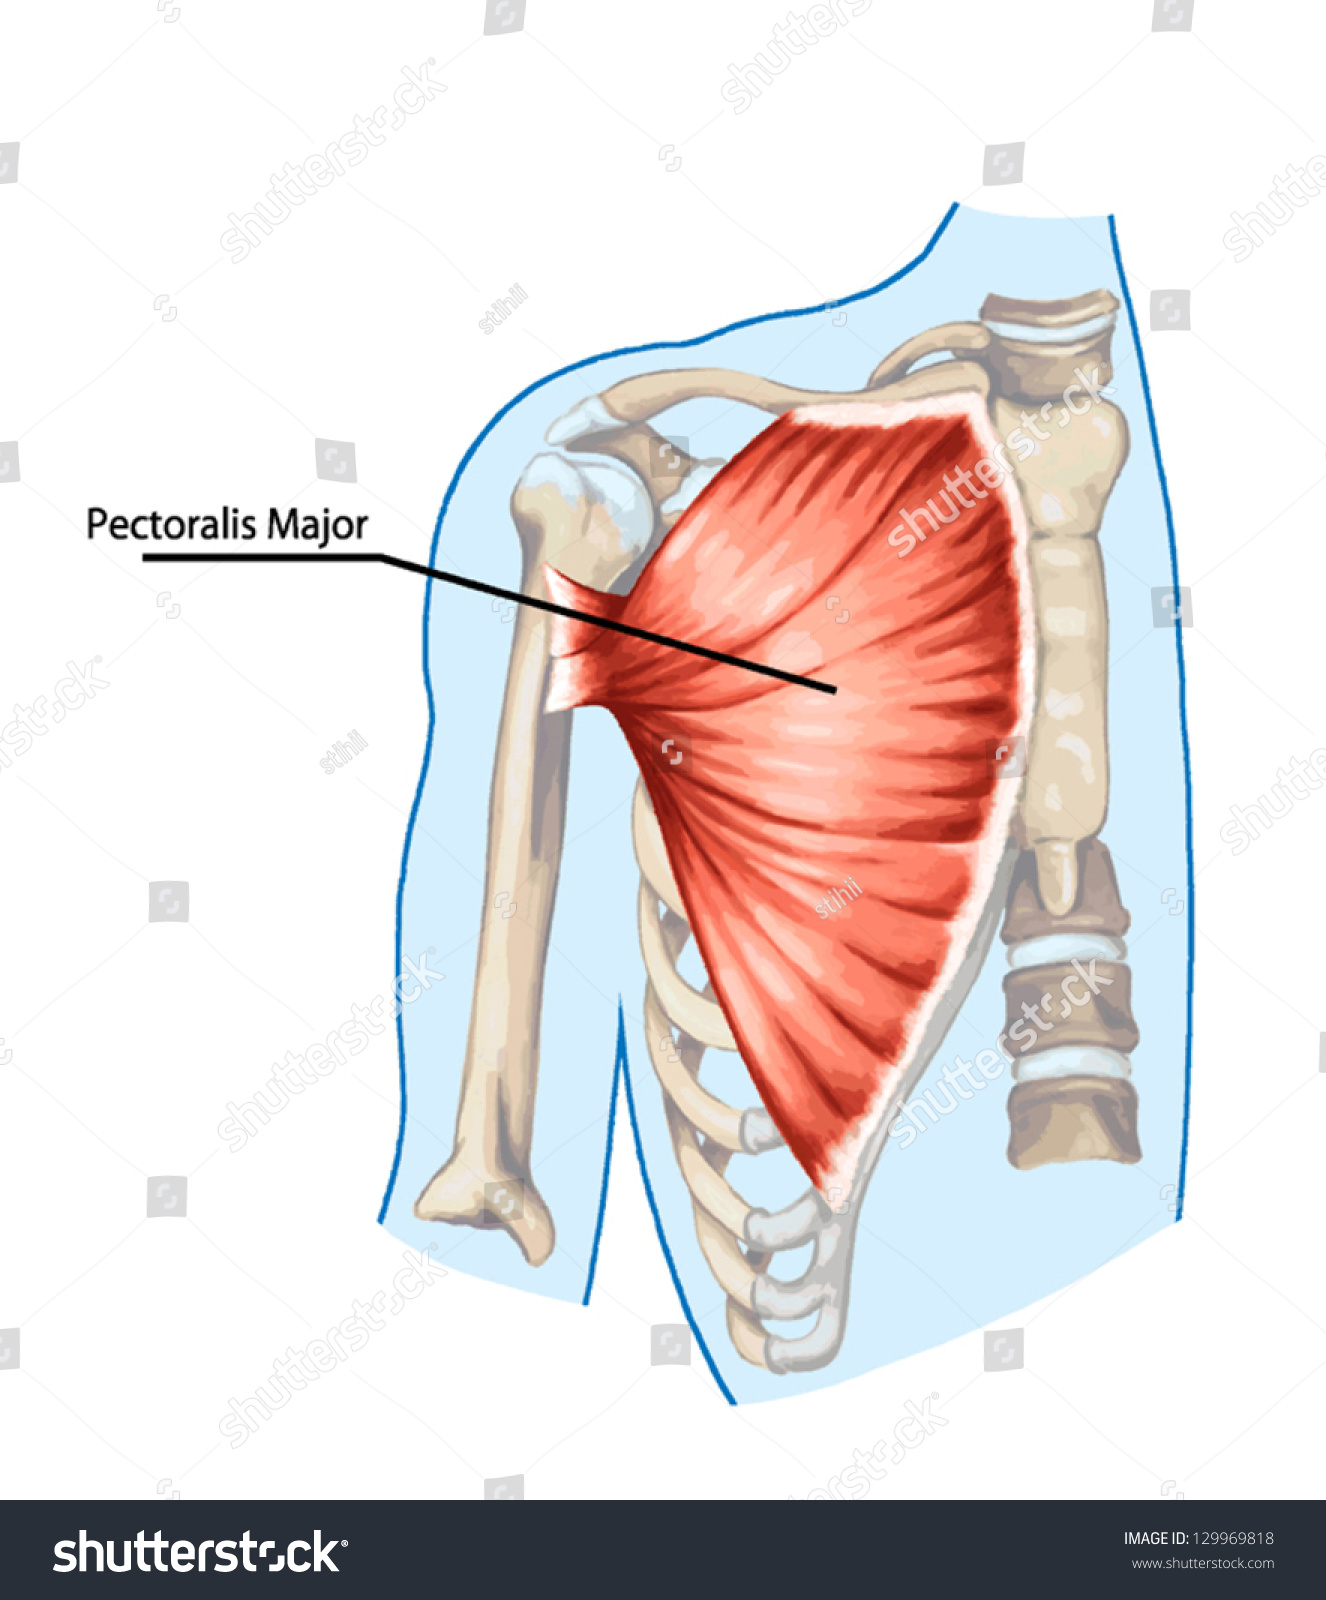 Pectoralis Major Muscle Muscles Chest Thorax Stock Vector (Royalty ...